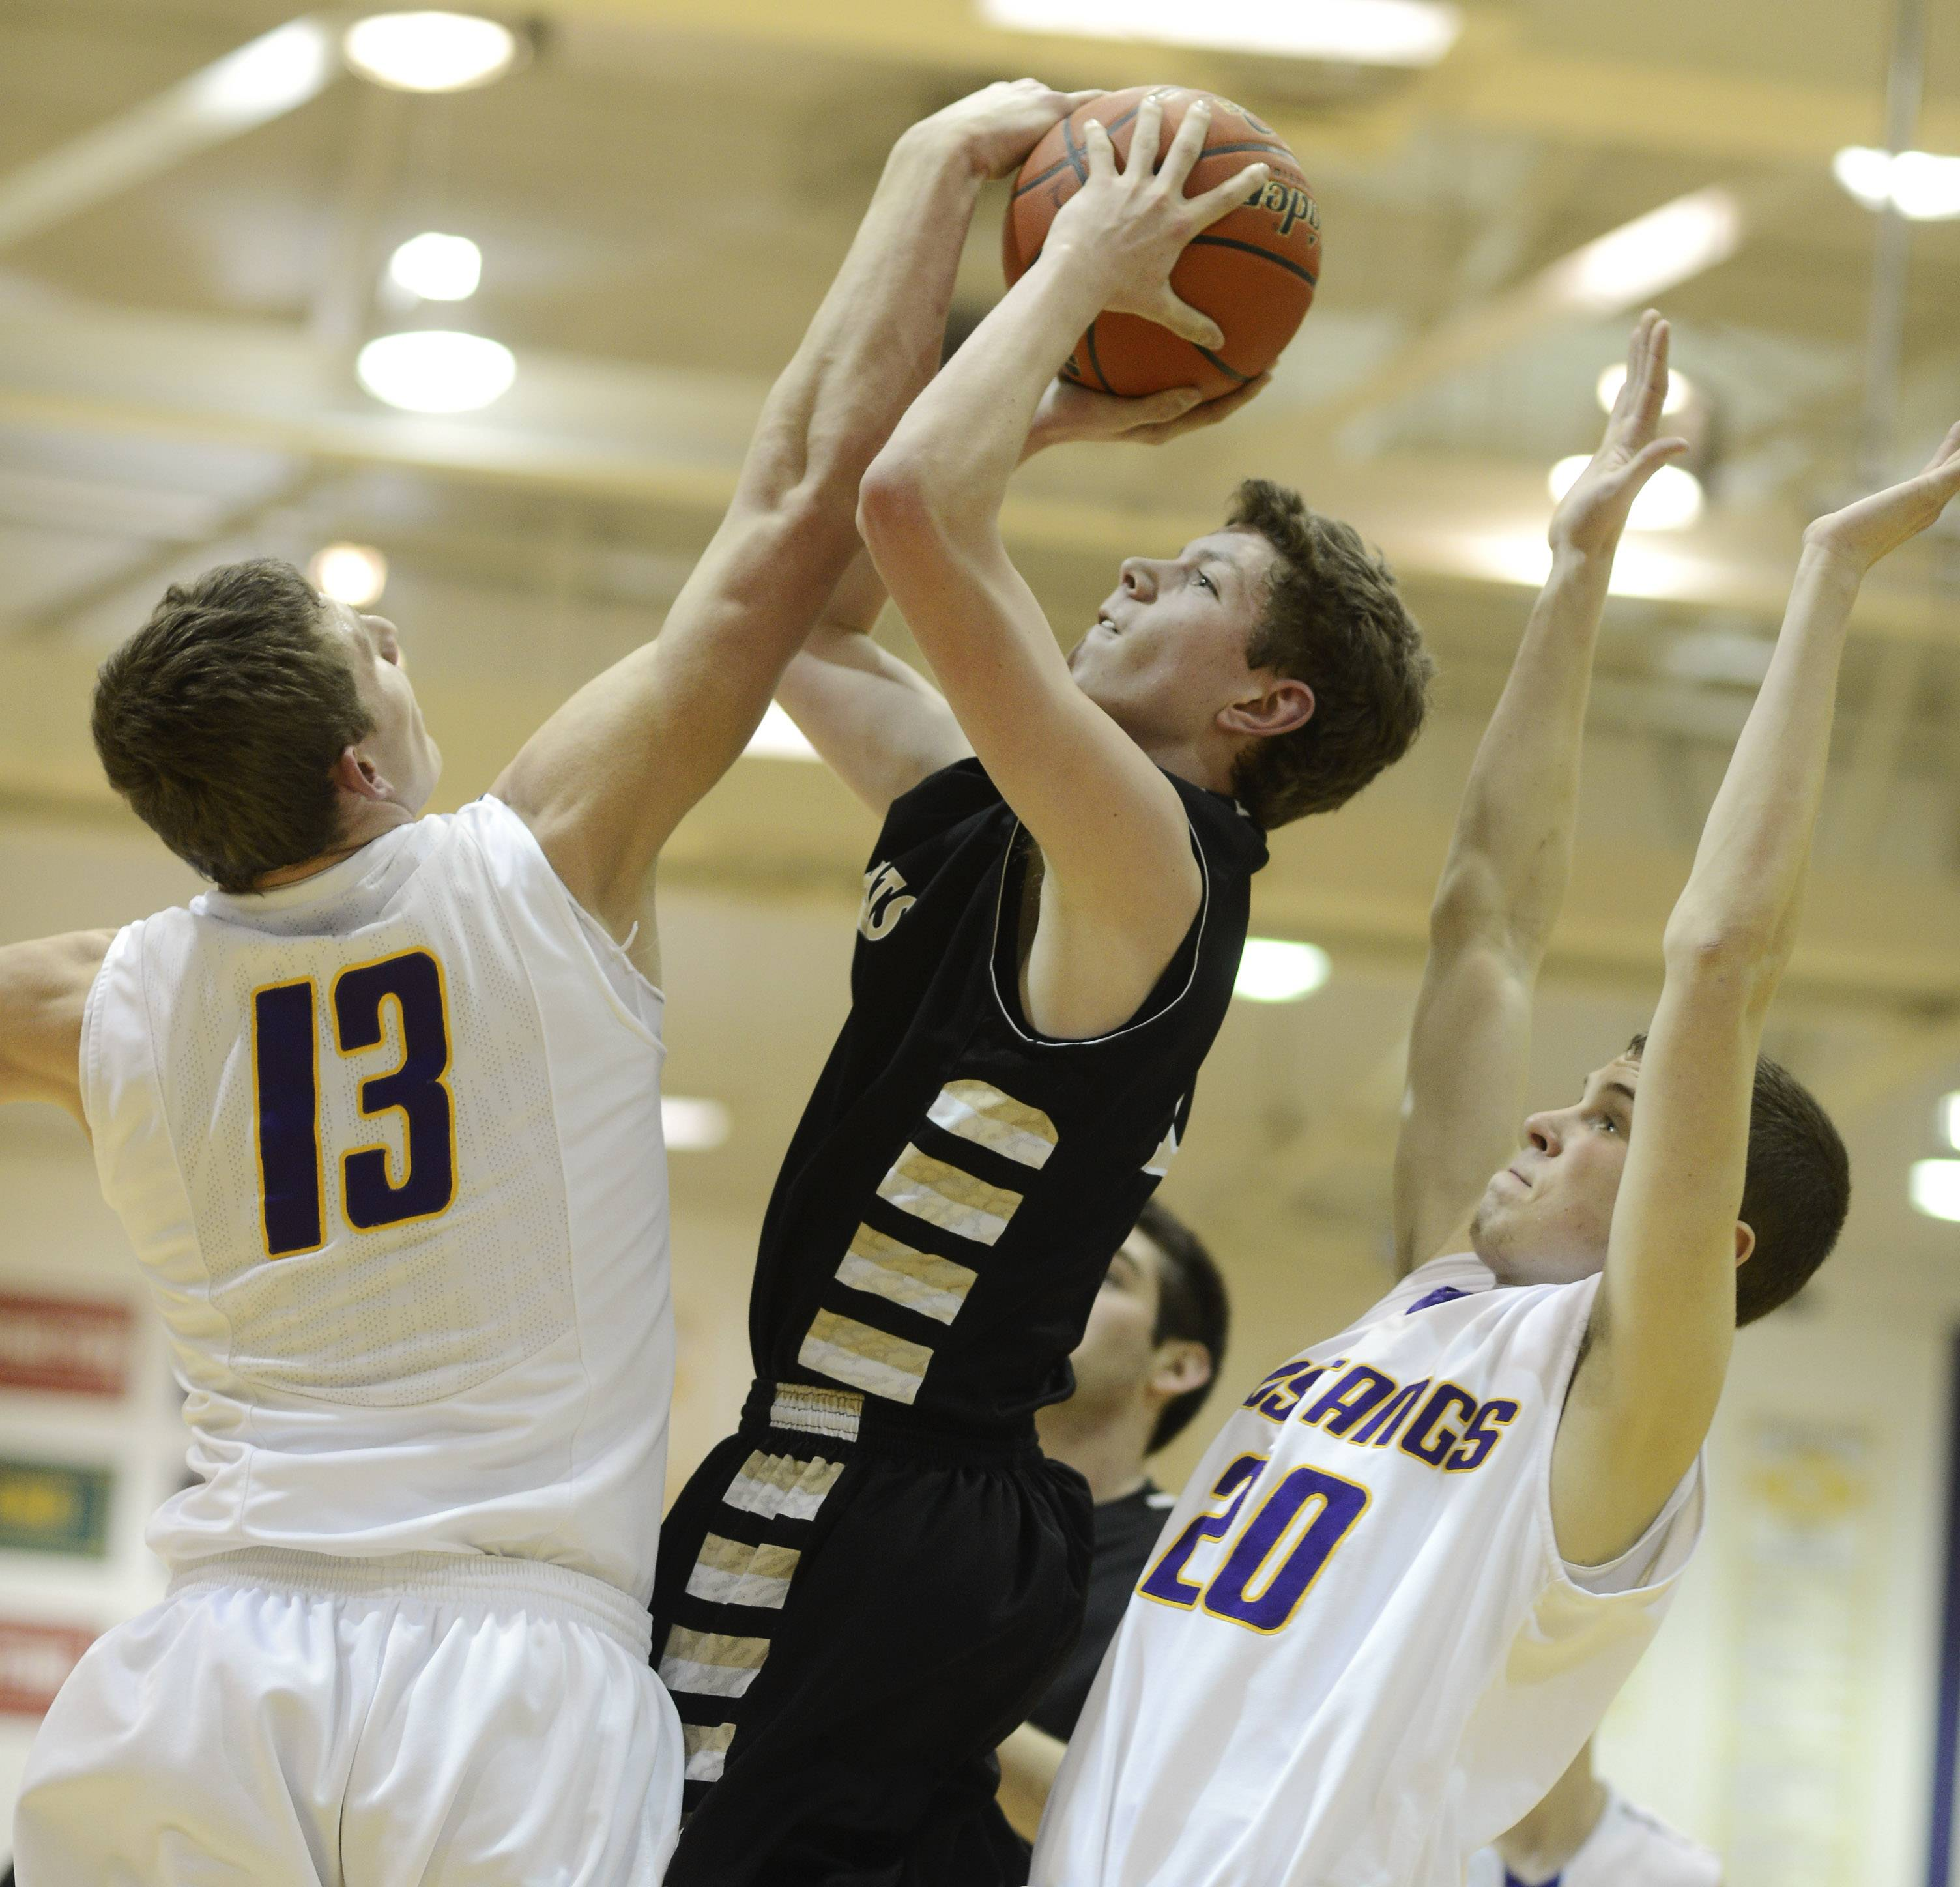 Graylake North's Lucas Buckels attempts a shot against Rolling Meadows defenders Matt Dolan, left, and Charlie Metzger during Tuesday's game at Rolling Meadows.